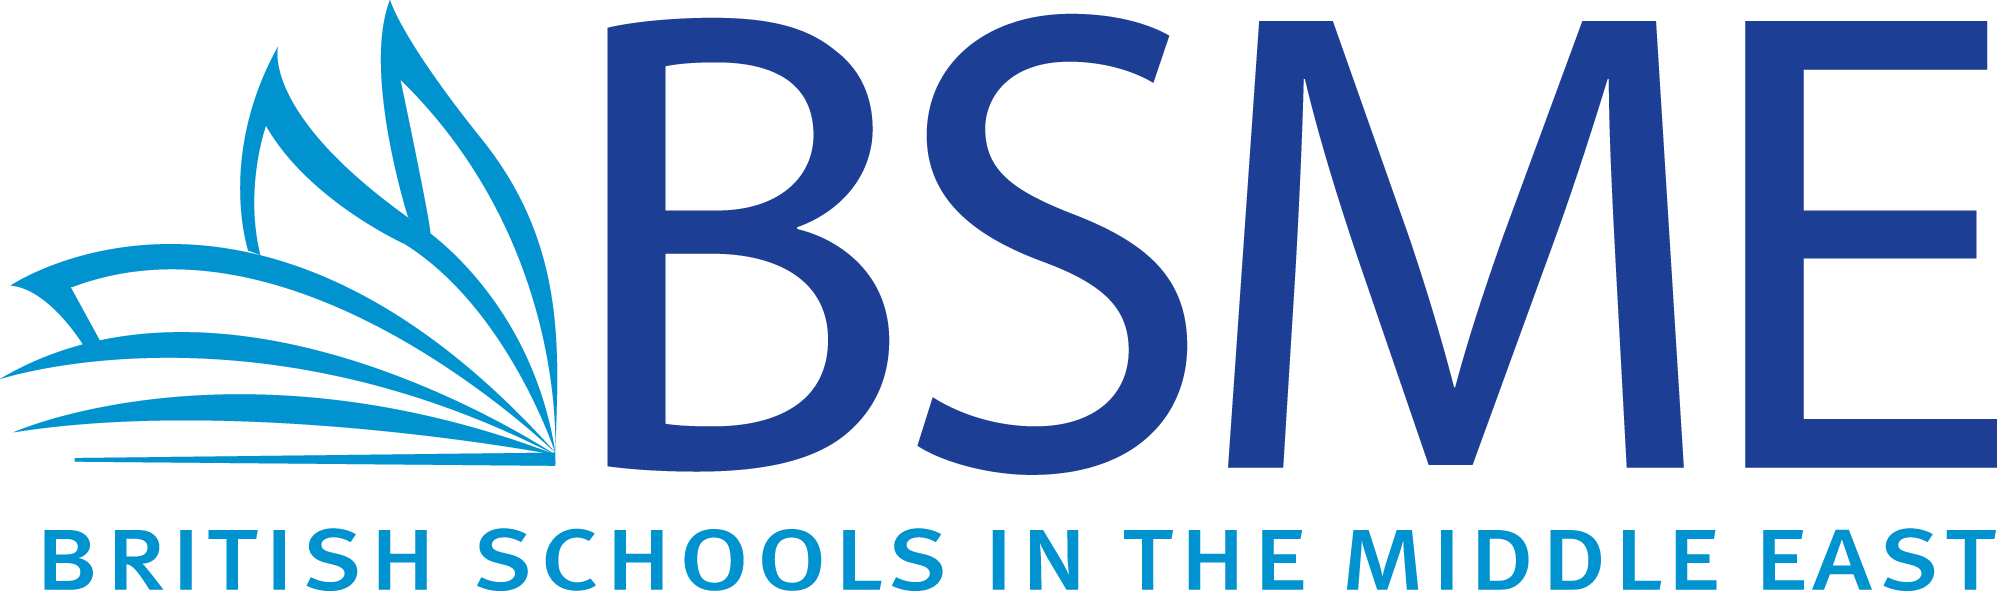 Premier Partner - ASCL - Association of School and College Leaders